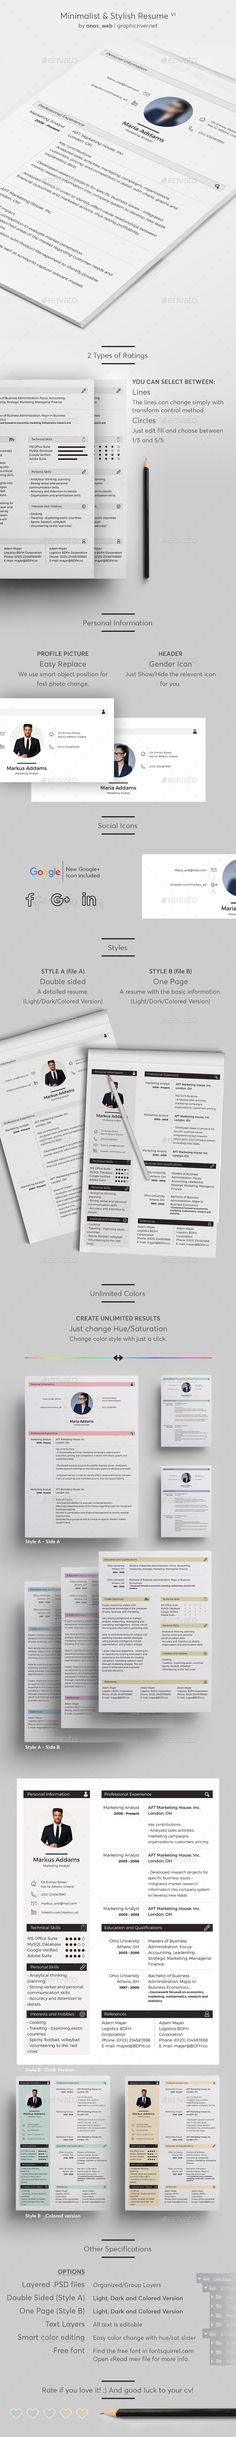 Modern Resume Template - 04 Modern resume template, Modern - size font for resume